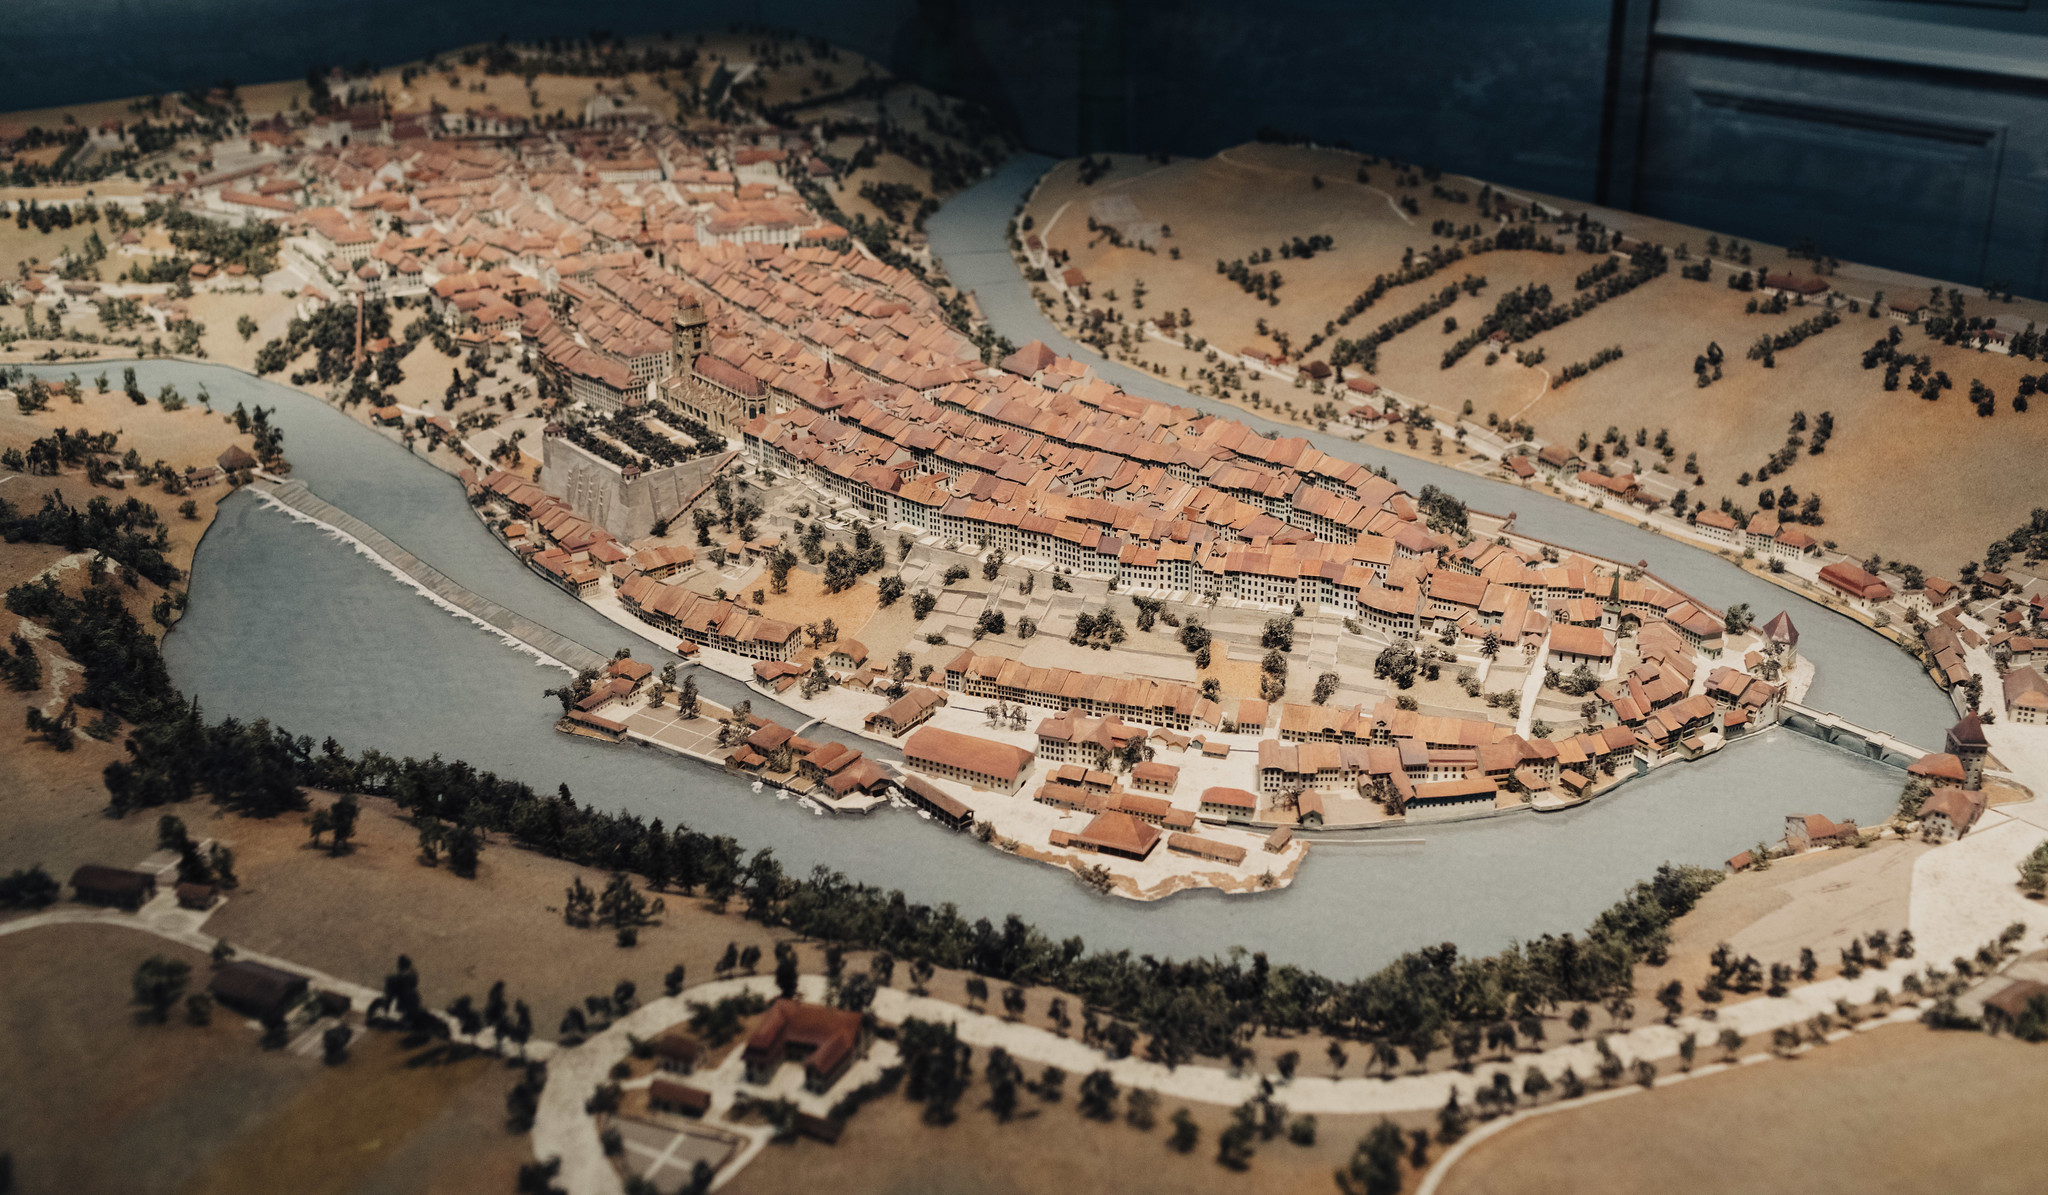 Scale model of medieval Bern